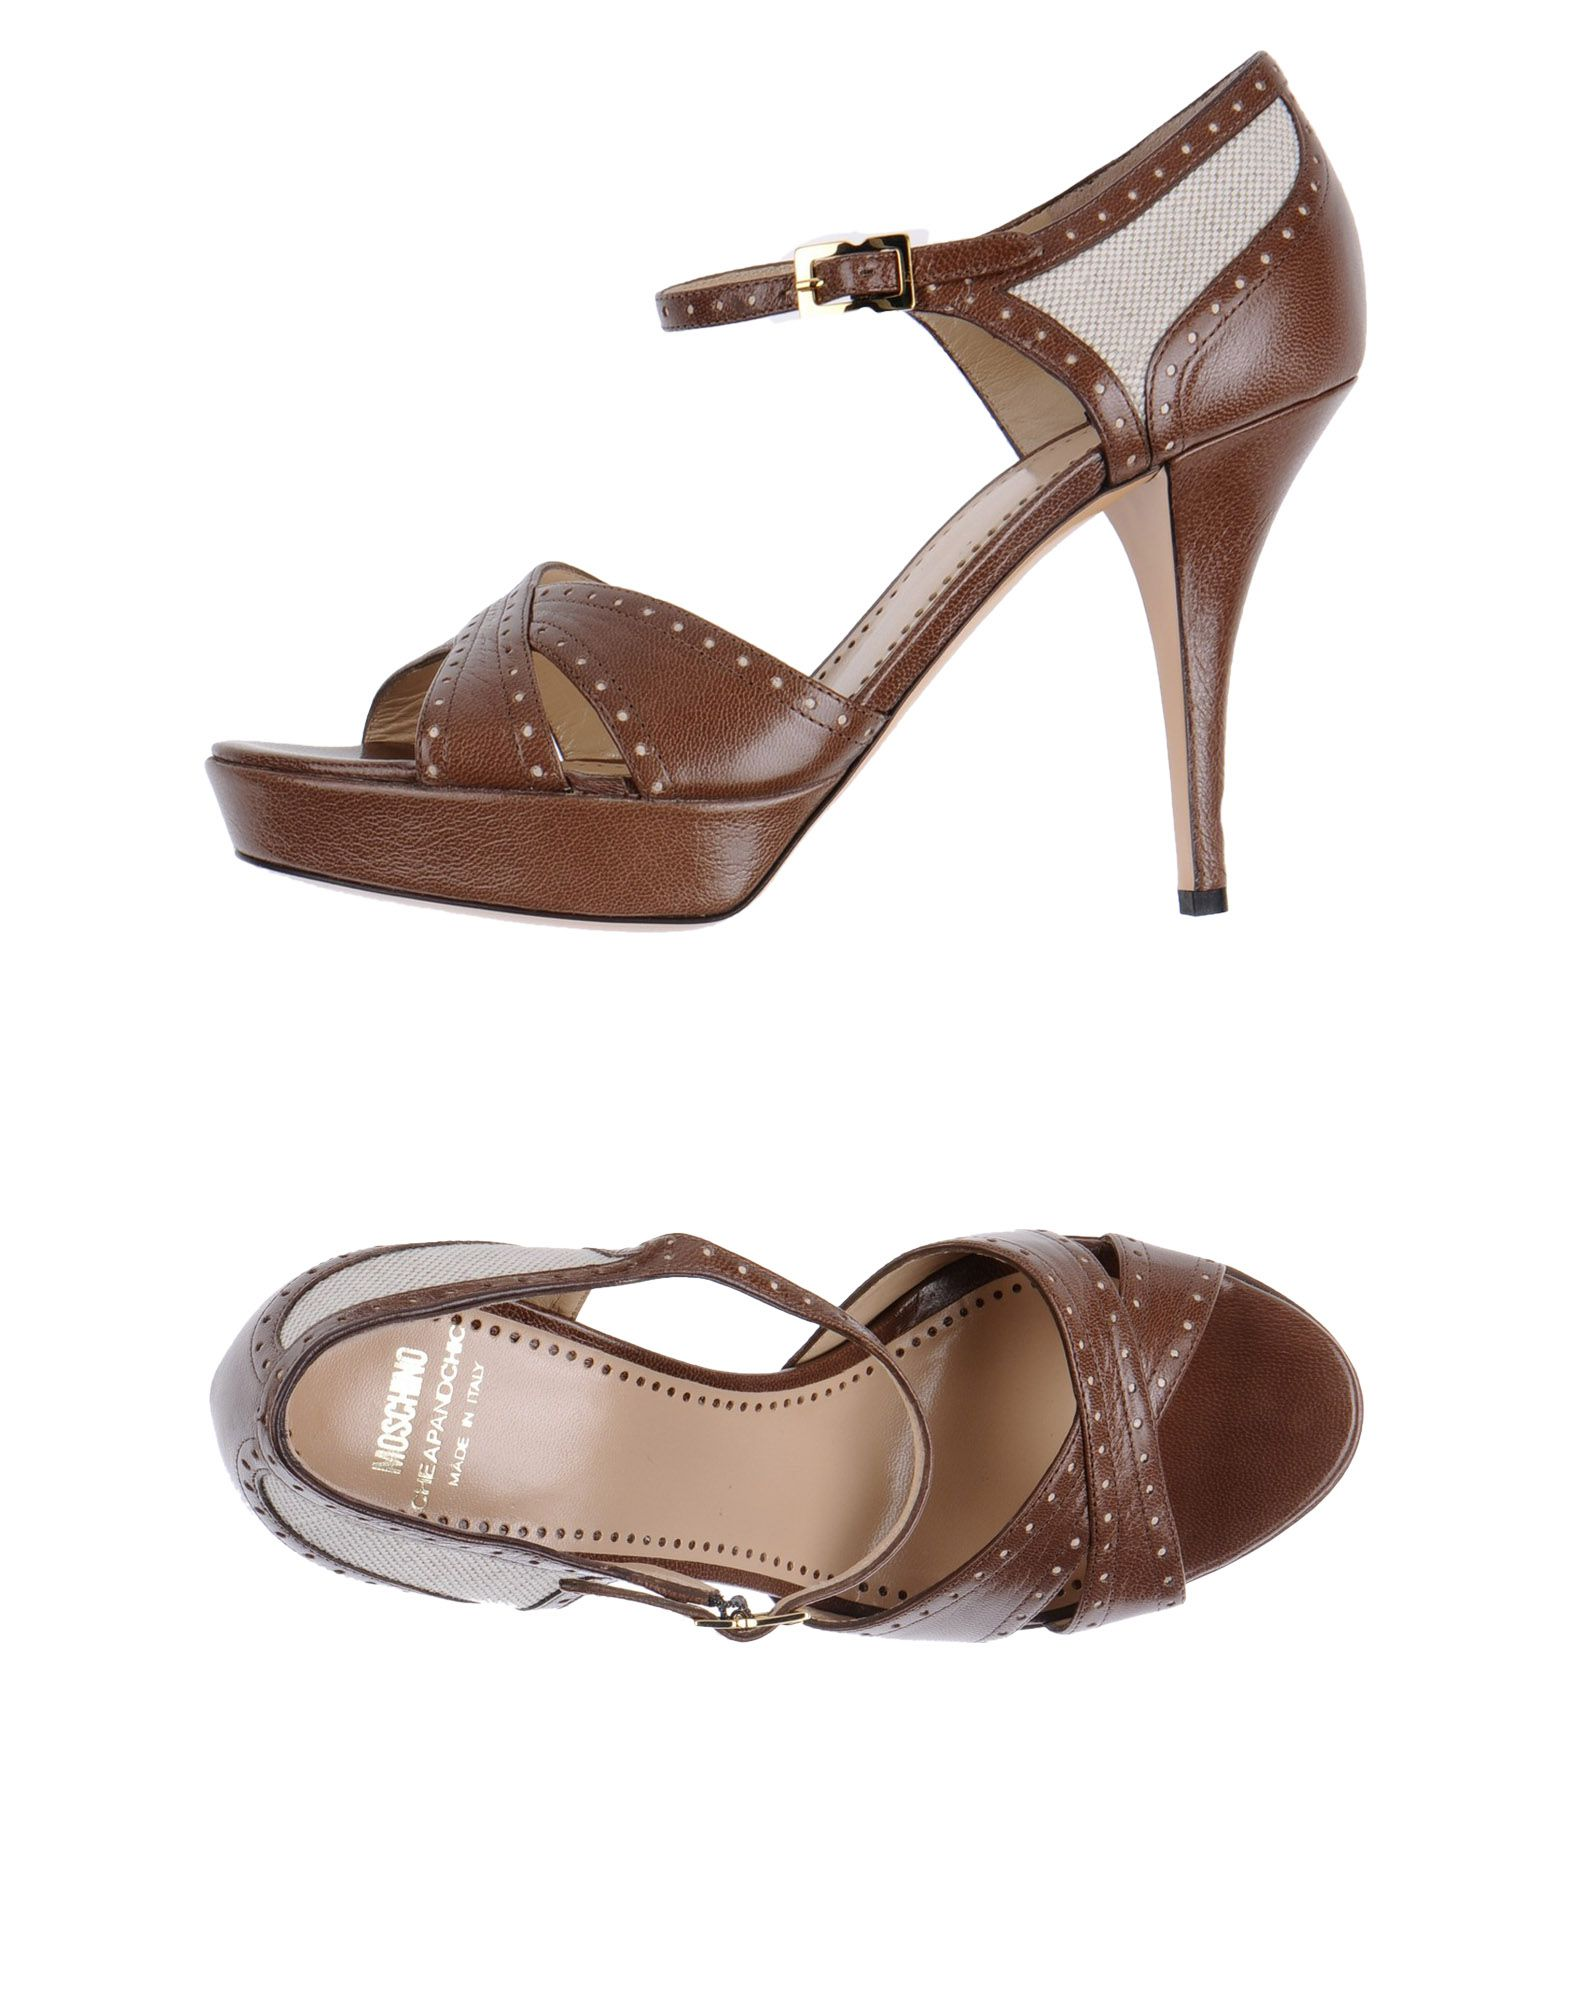 Free shipping and returns on Women's Brown Wedge Sandals at grounwhijwgg.cf